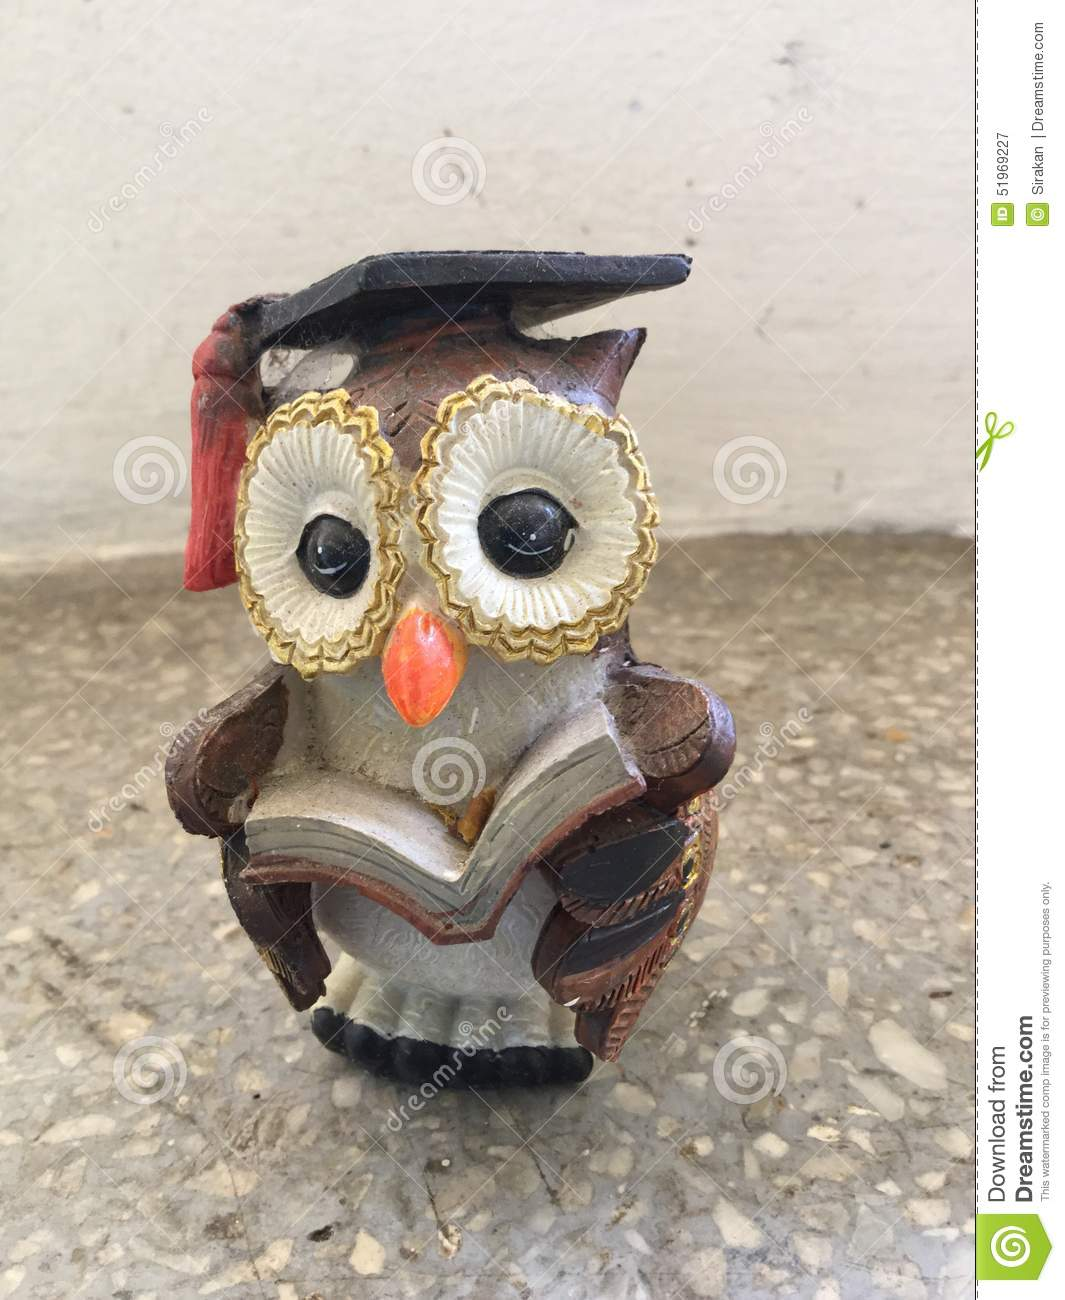 Cute Owl Decor Cute Owl Statue Stock Image Image Of Clay Carved Brown 51969227